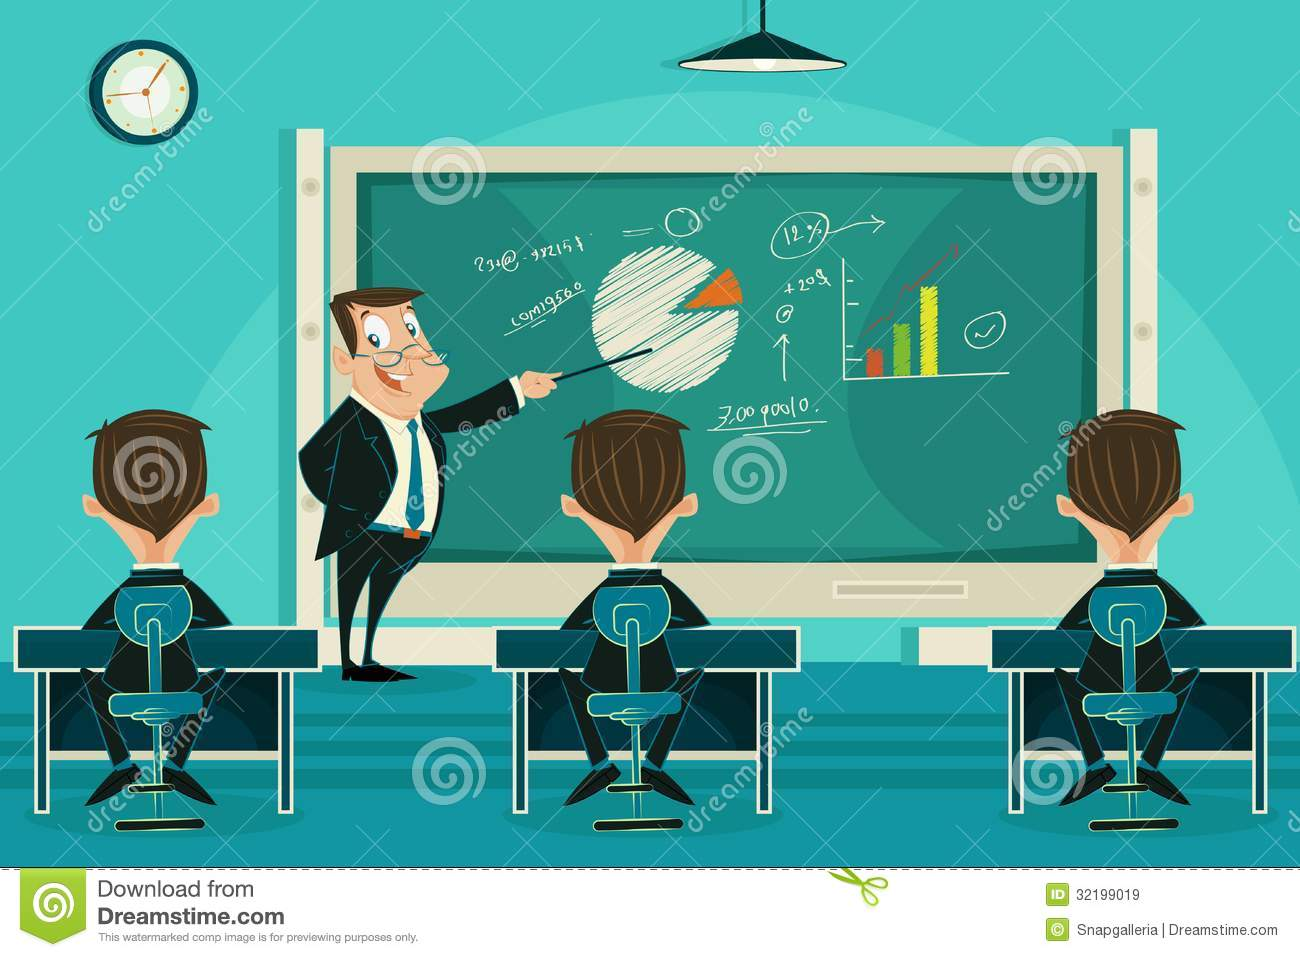 ... Presentation Class Royalty Free Stock Images - Image: 32199019: www.dreamstime.com/royalty-free-stock-images-business-presentation...